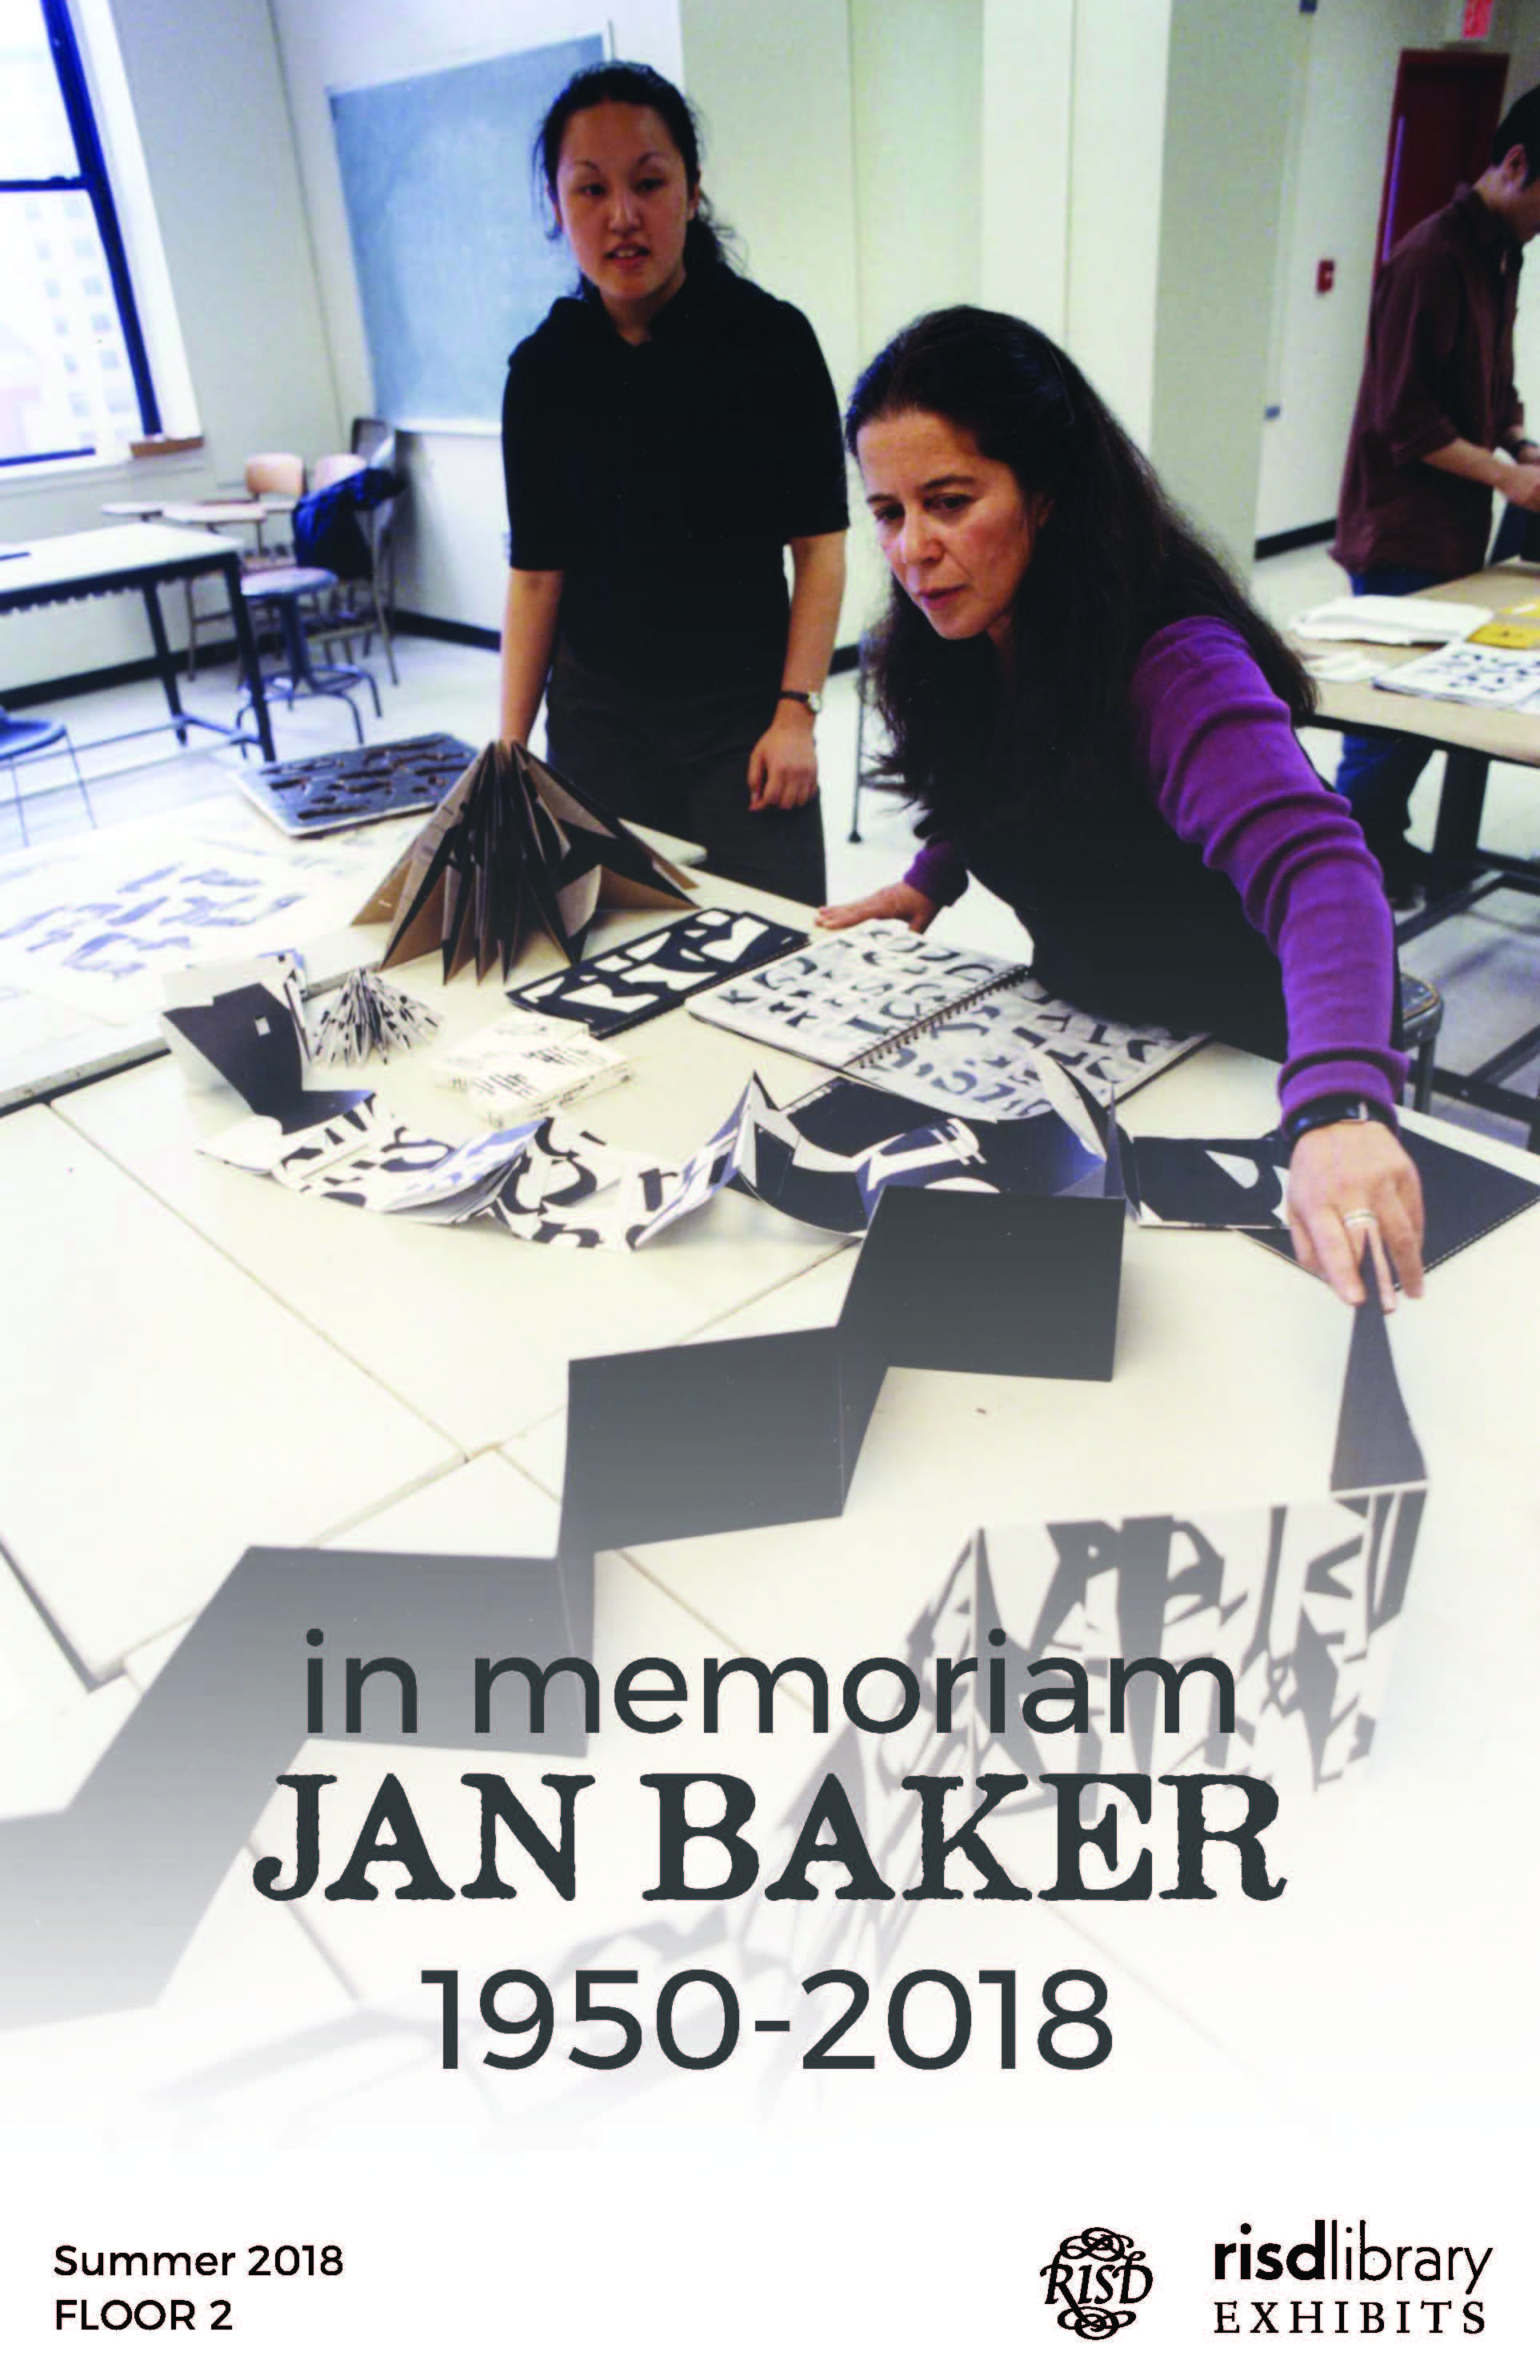 In Memoriam: JAN BAKER 1950-2018